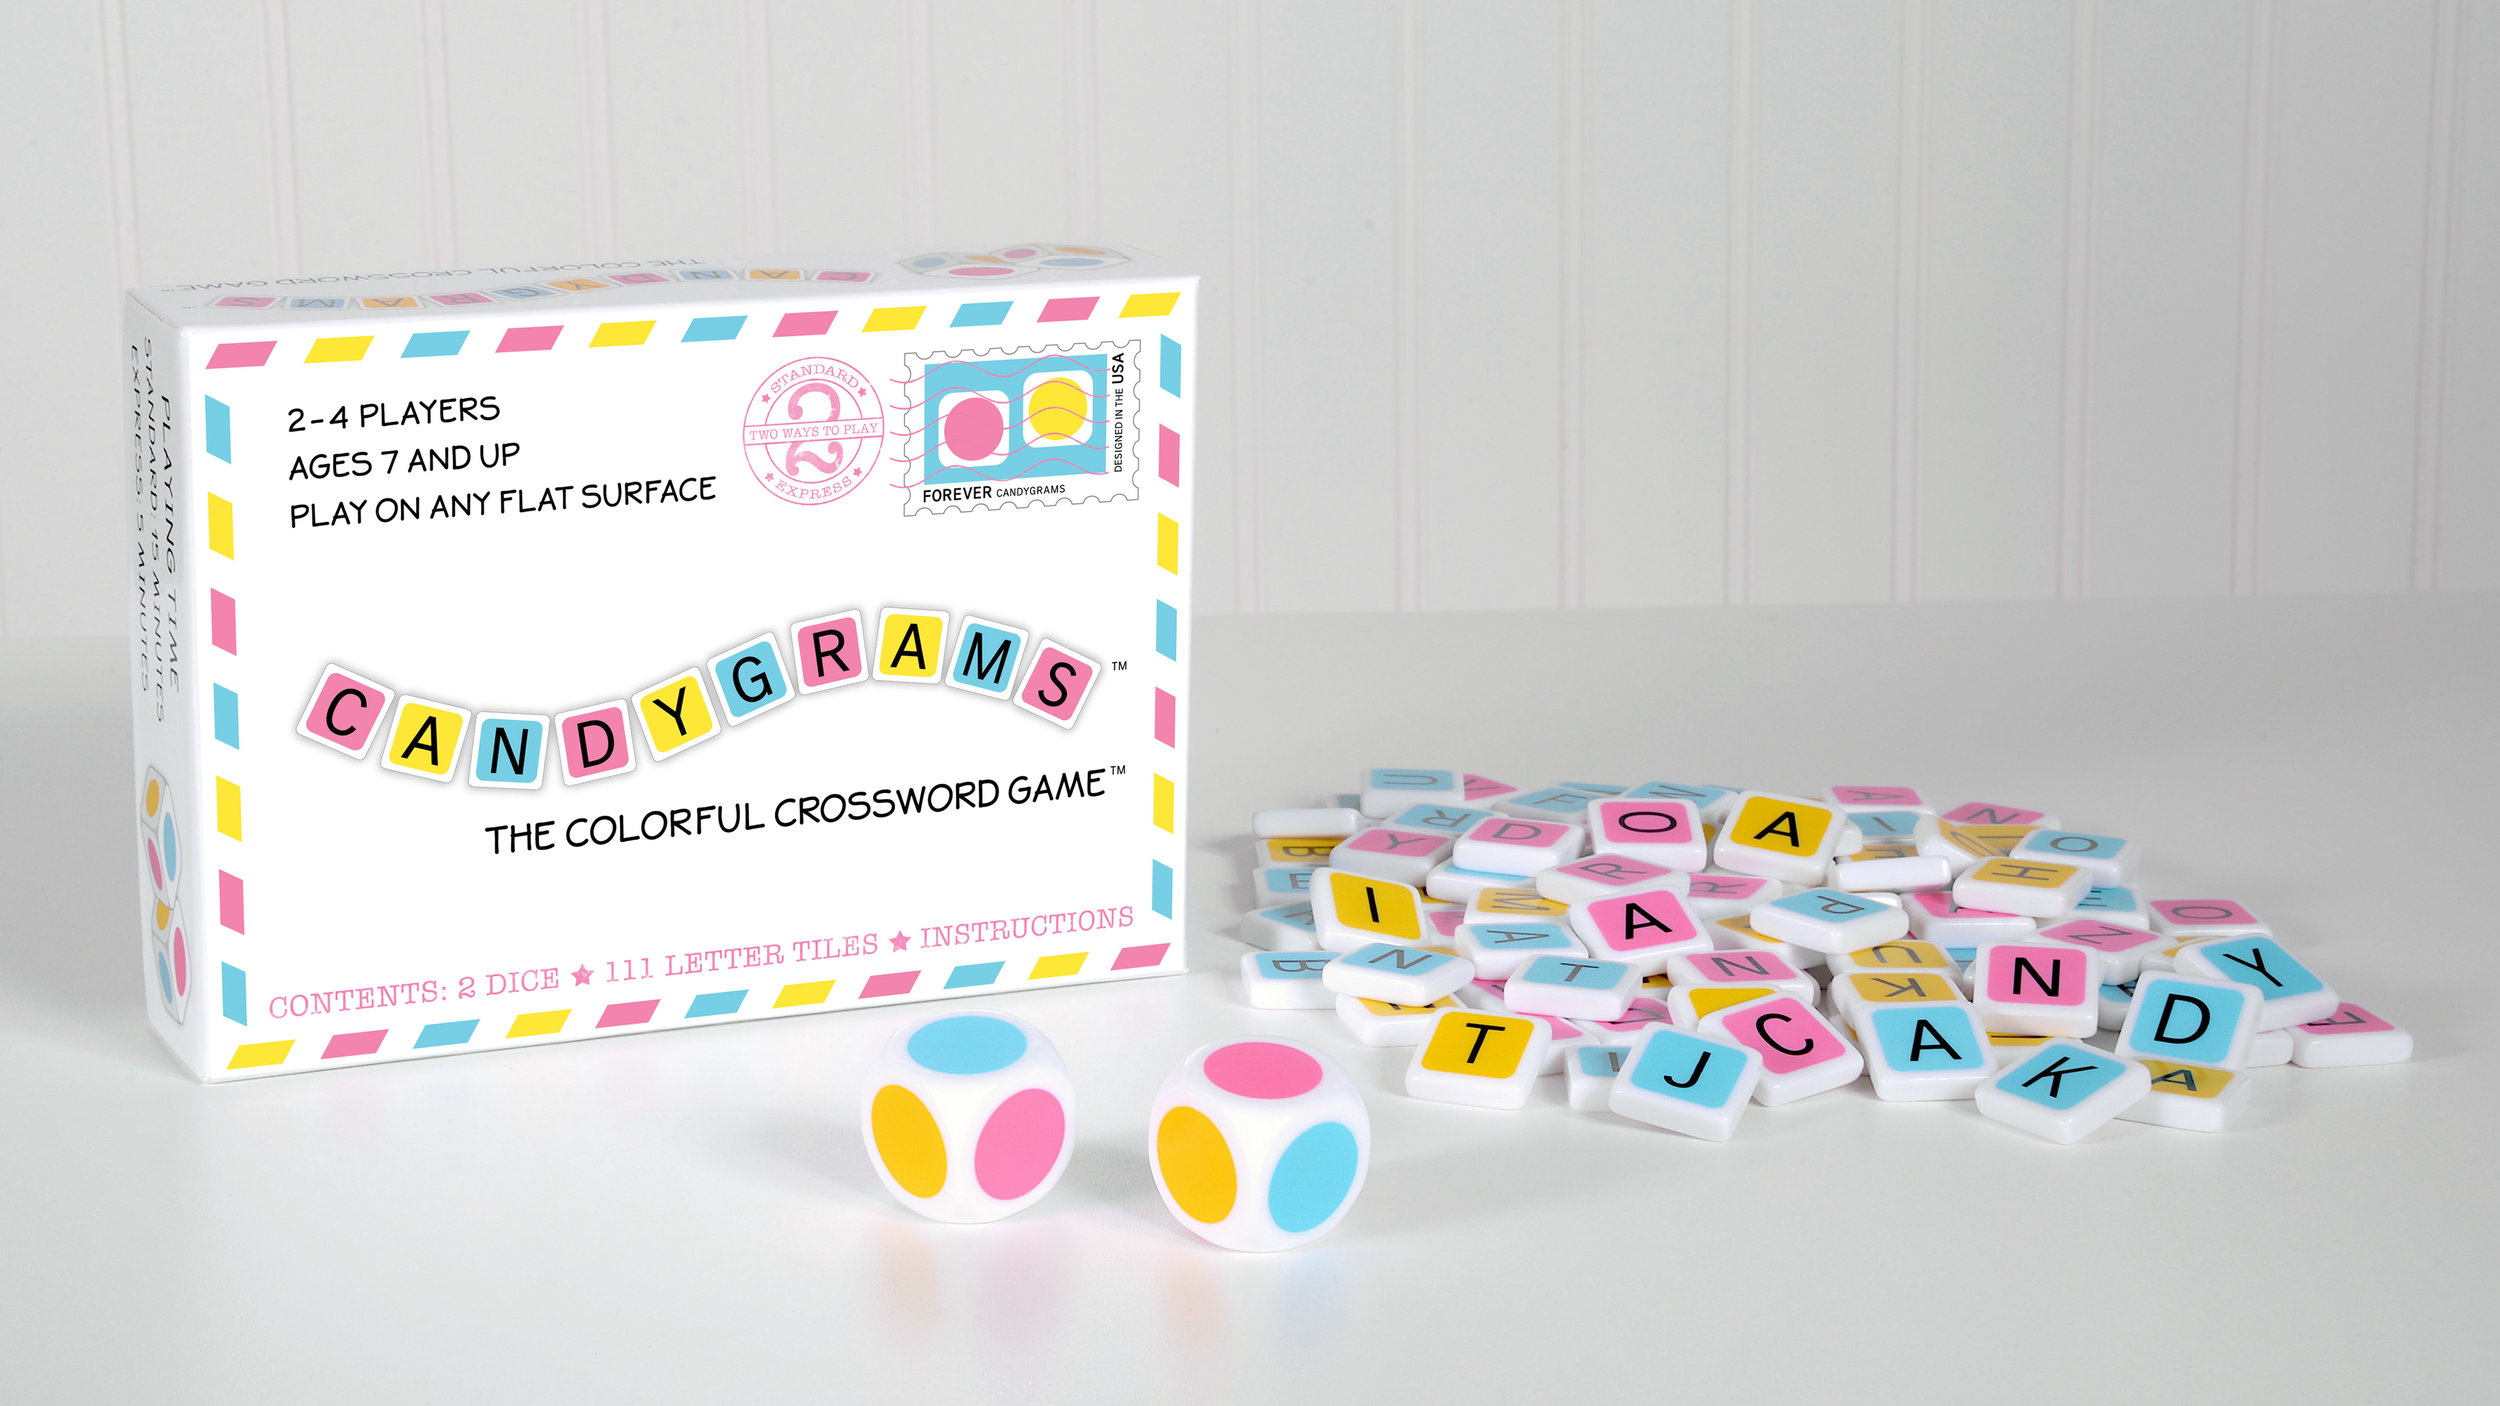 It's hard to find family games — especially word-making games — that are fun and challenging for both kids and adults, but Candygrams delivers an instant classic.